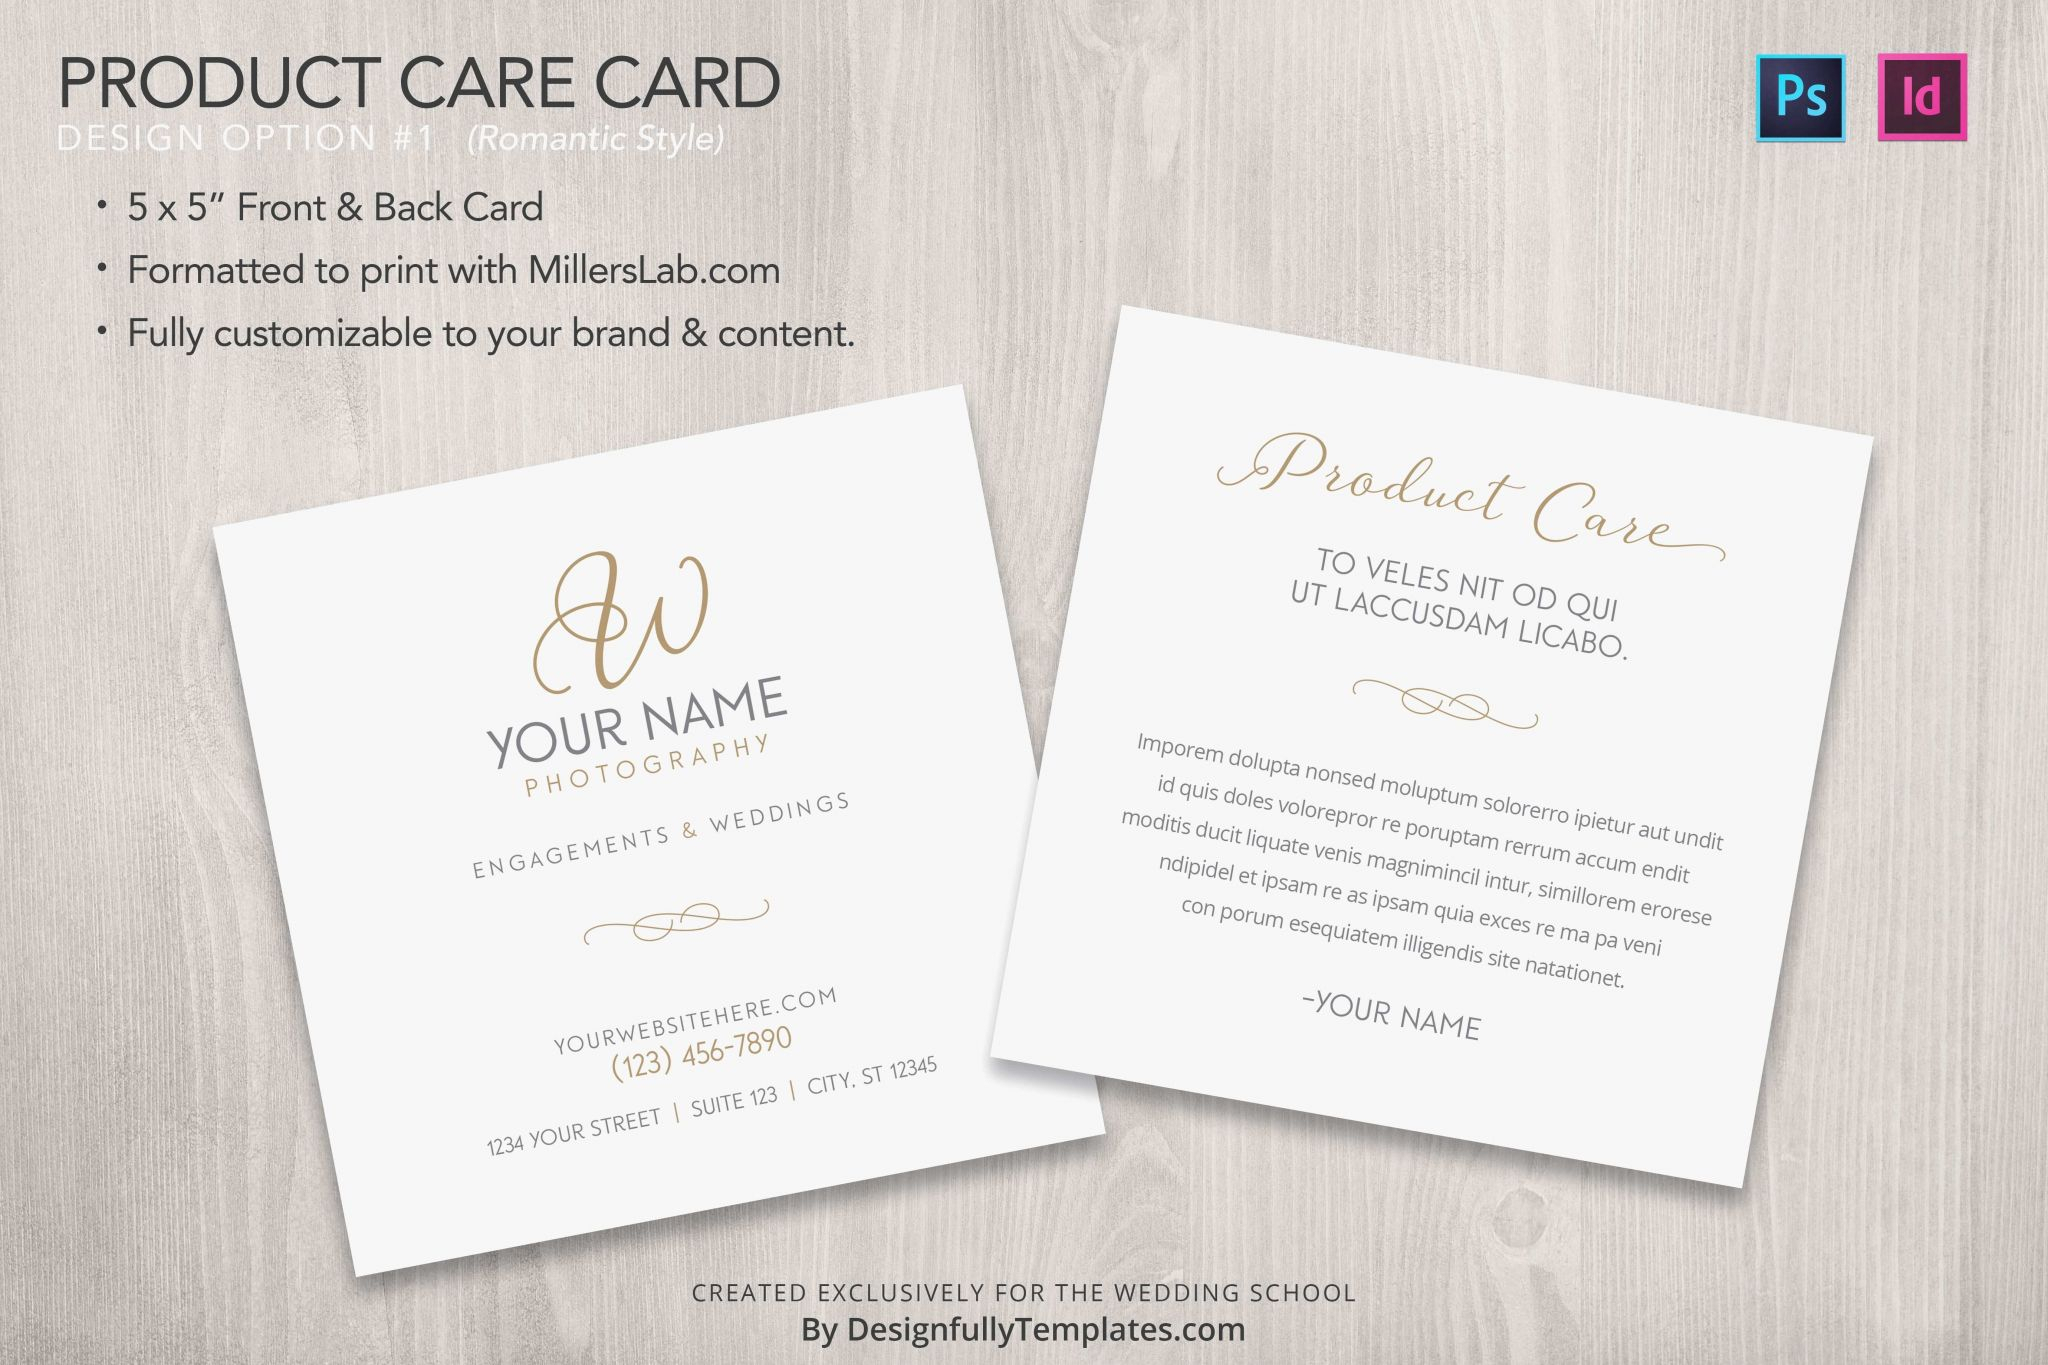 Free Place Card Templates 6 Per Page - Atlantaauctionco Throughout Free Place Card Templates 6 Per Page